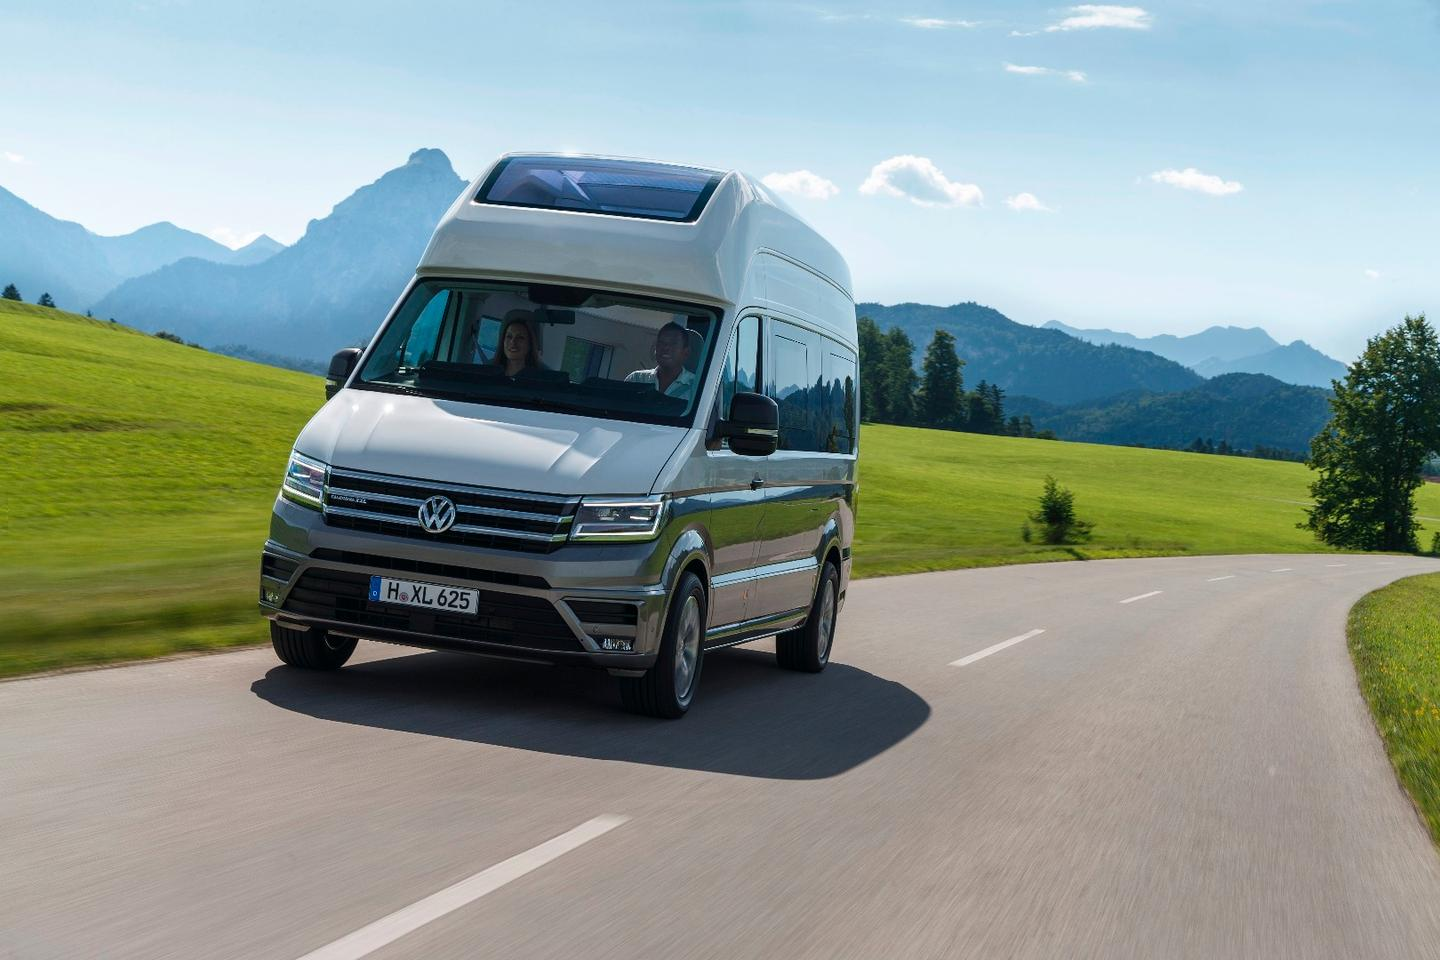 The Volkswagen California XXL is based on a medium-wheelbase Crafter